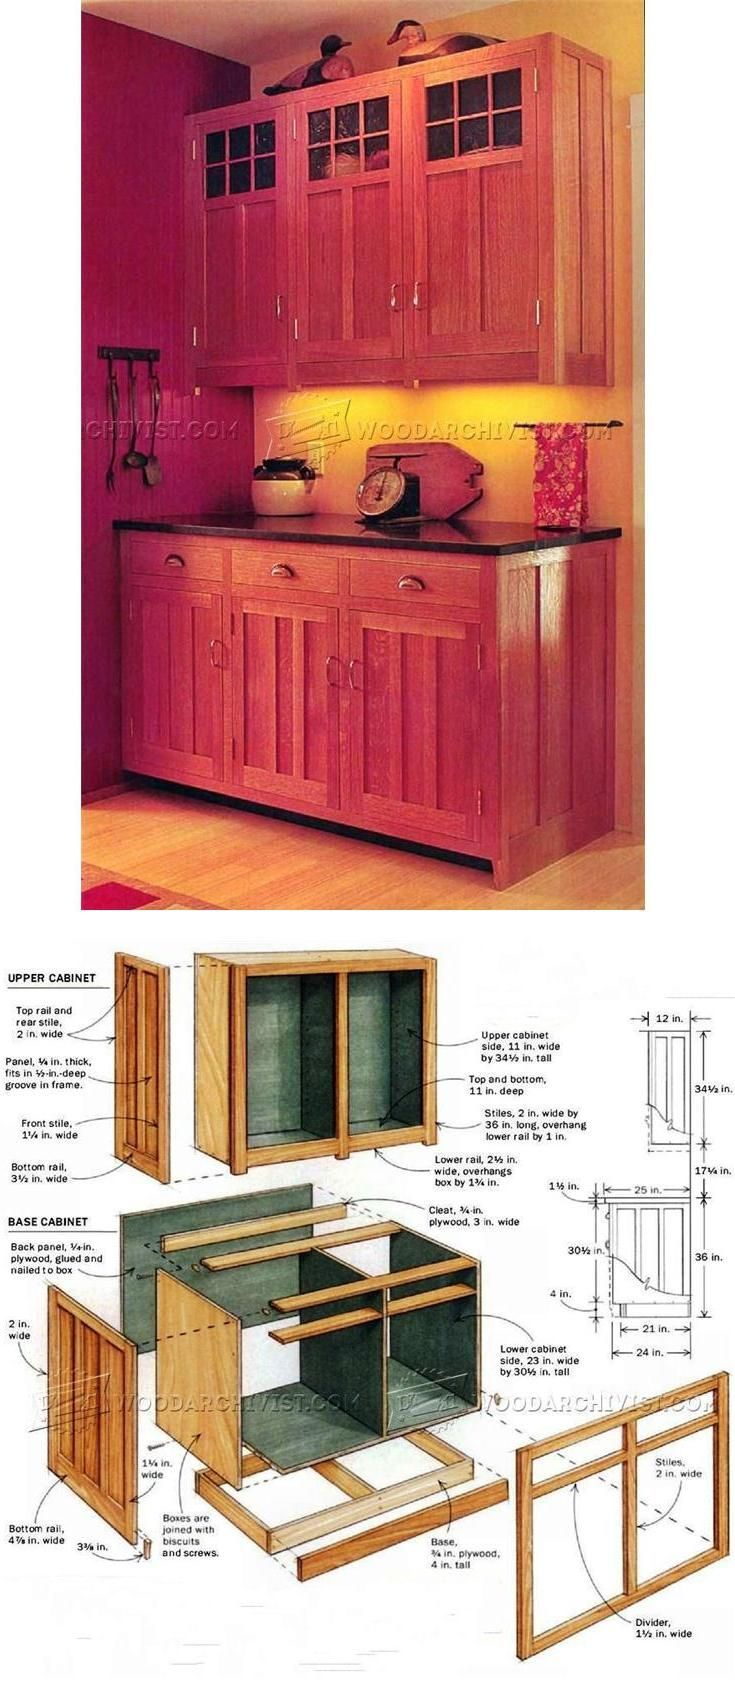 Best 25 cabinet plans ideas only on pinterest ana white for Craftsman furniture plans